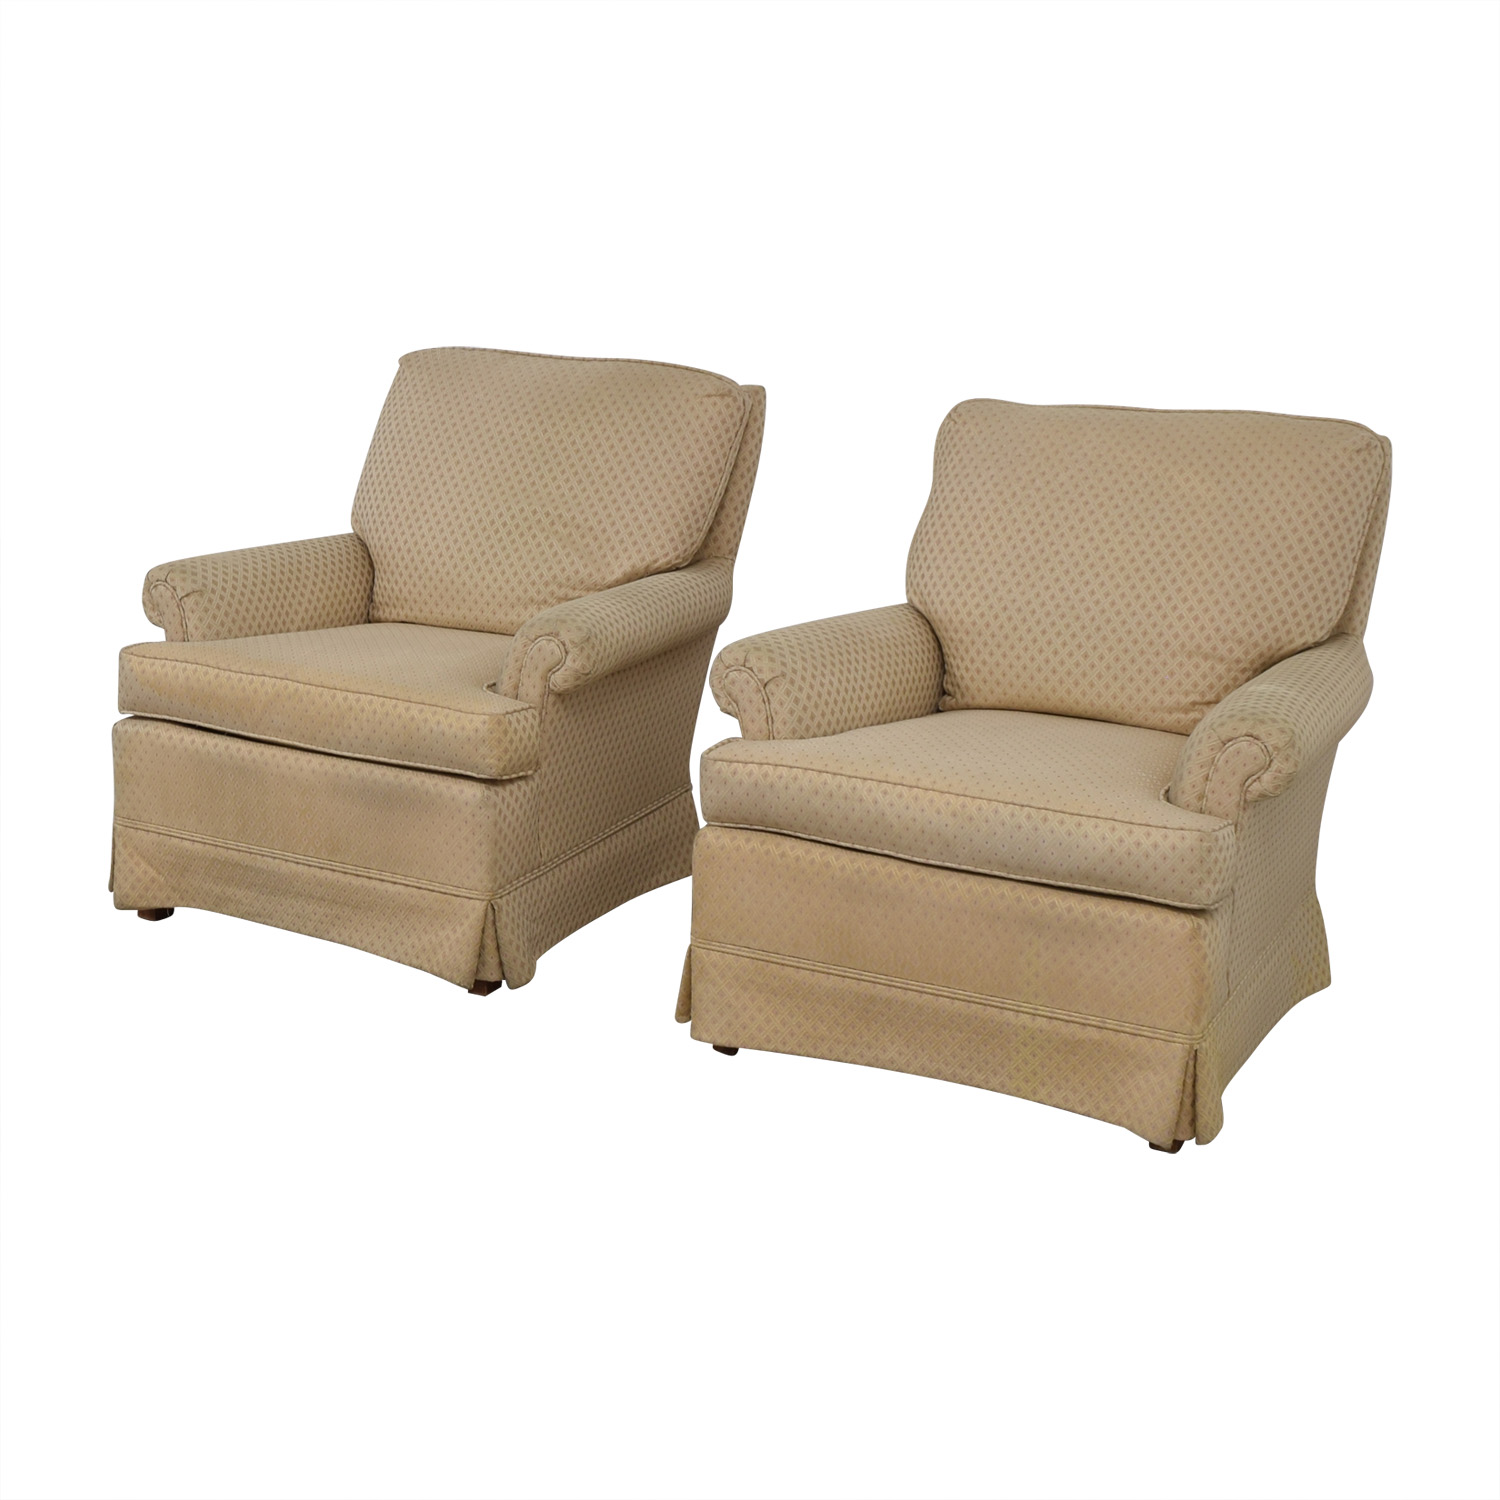 Broyhill Armchair: Broyhill Broyhill Beige Upholstered Accent